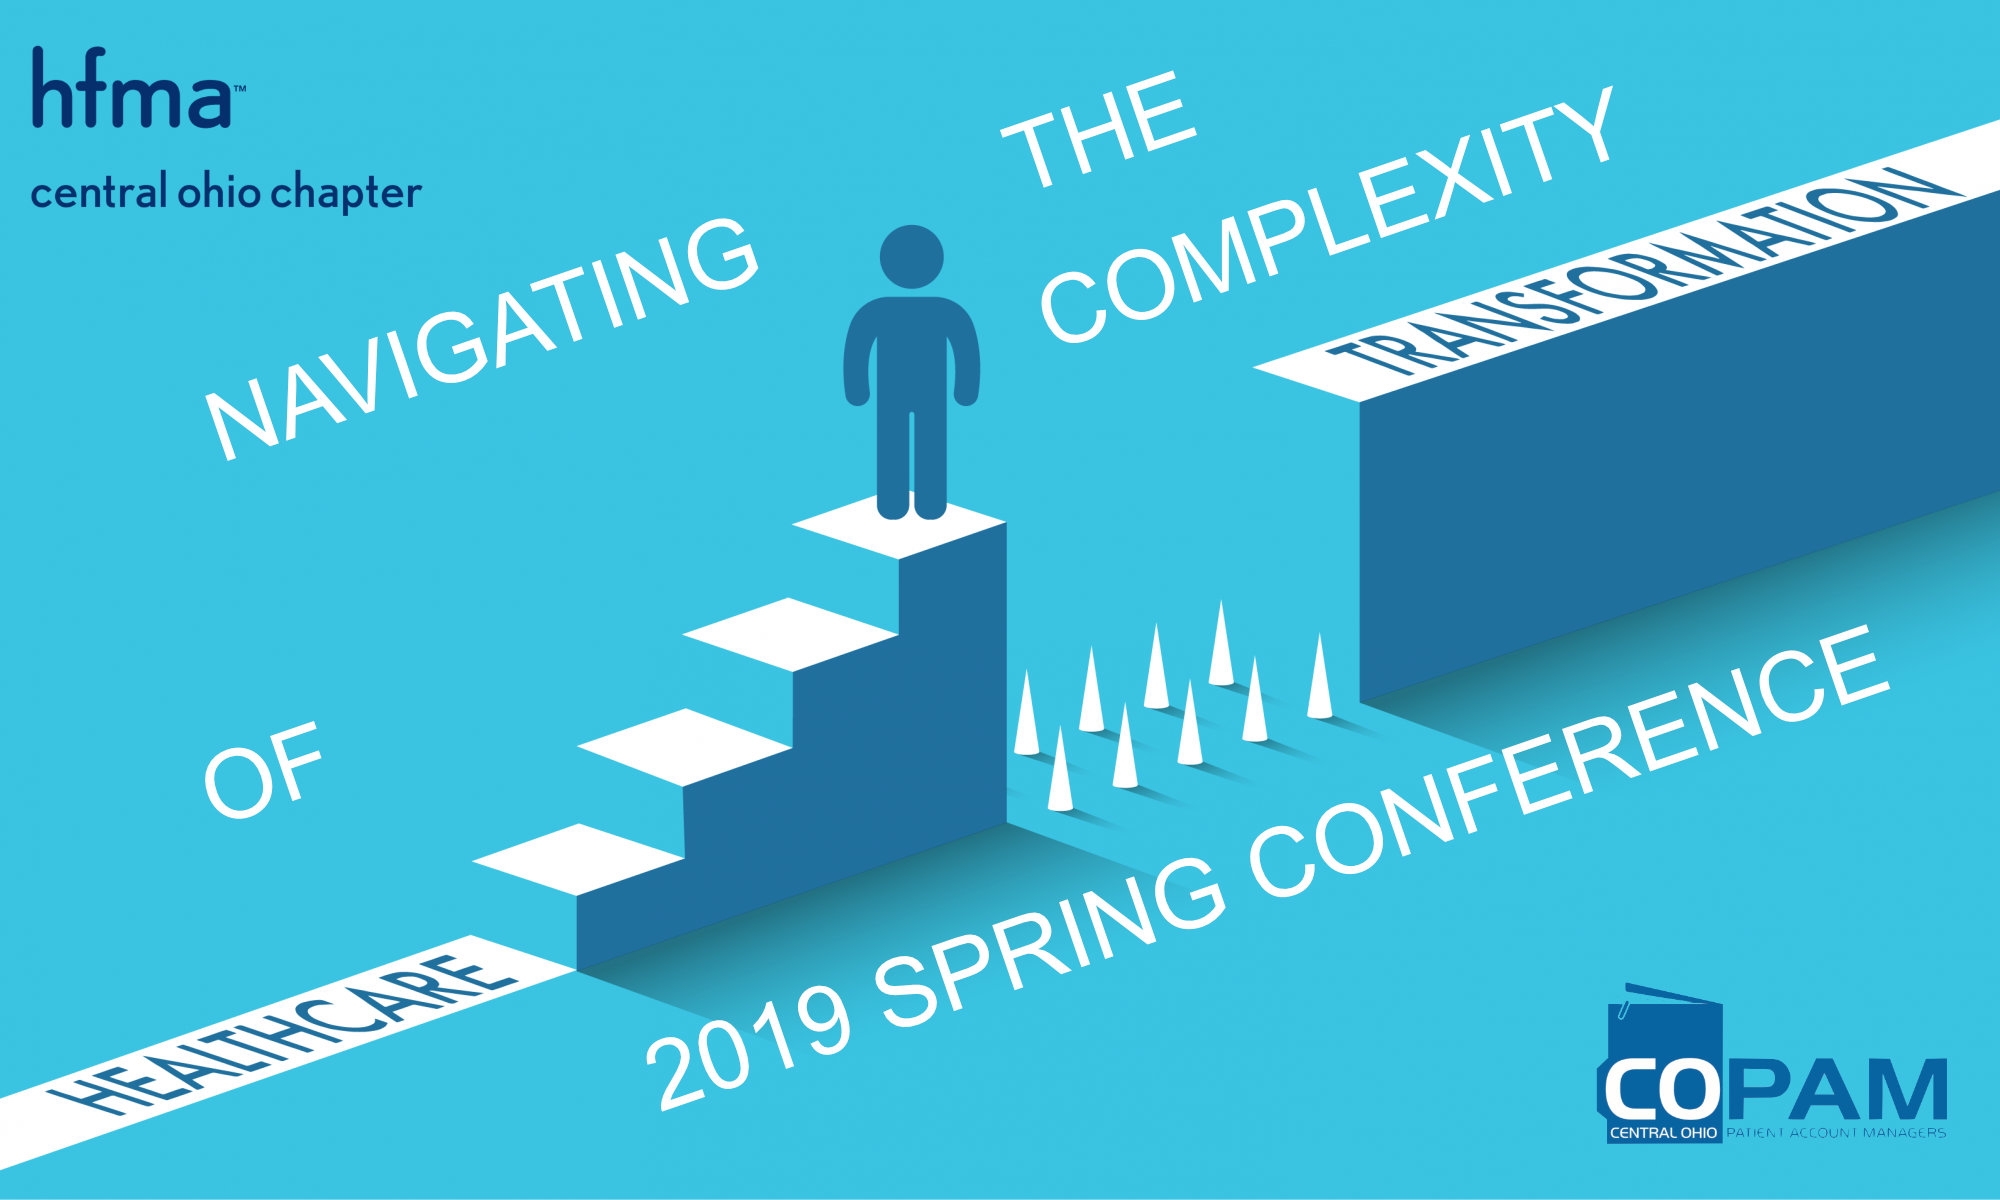 Central Ohio HFMA 2019 Annual Spring Conference